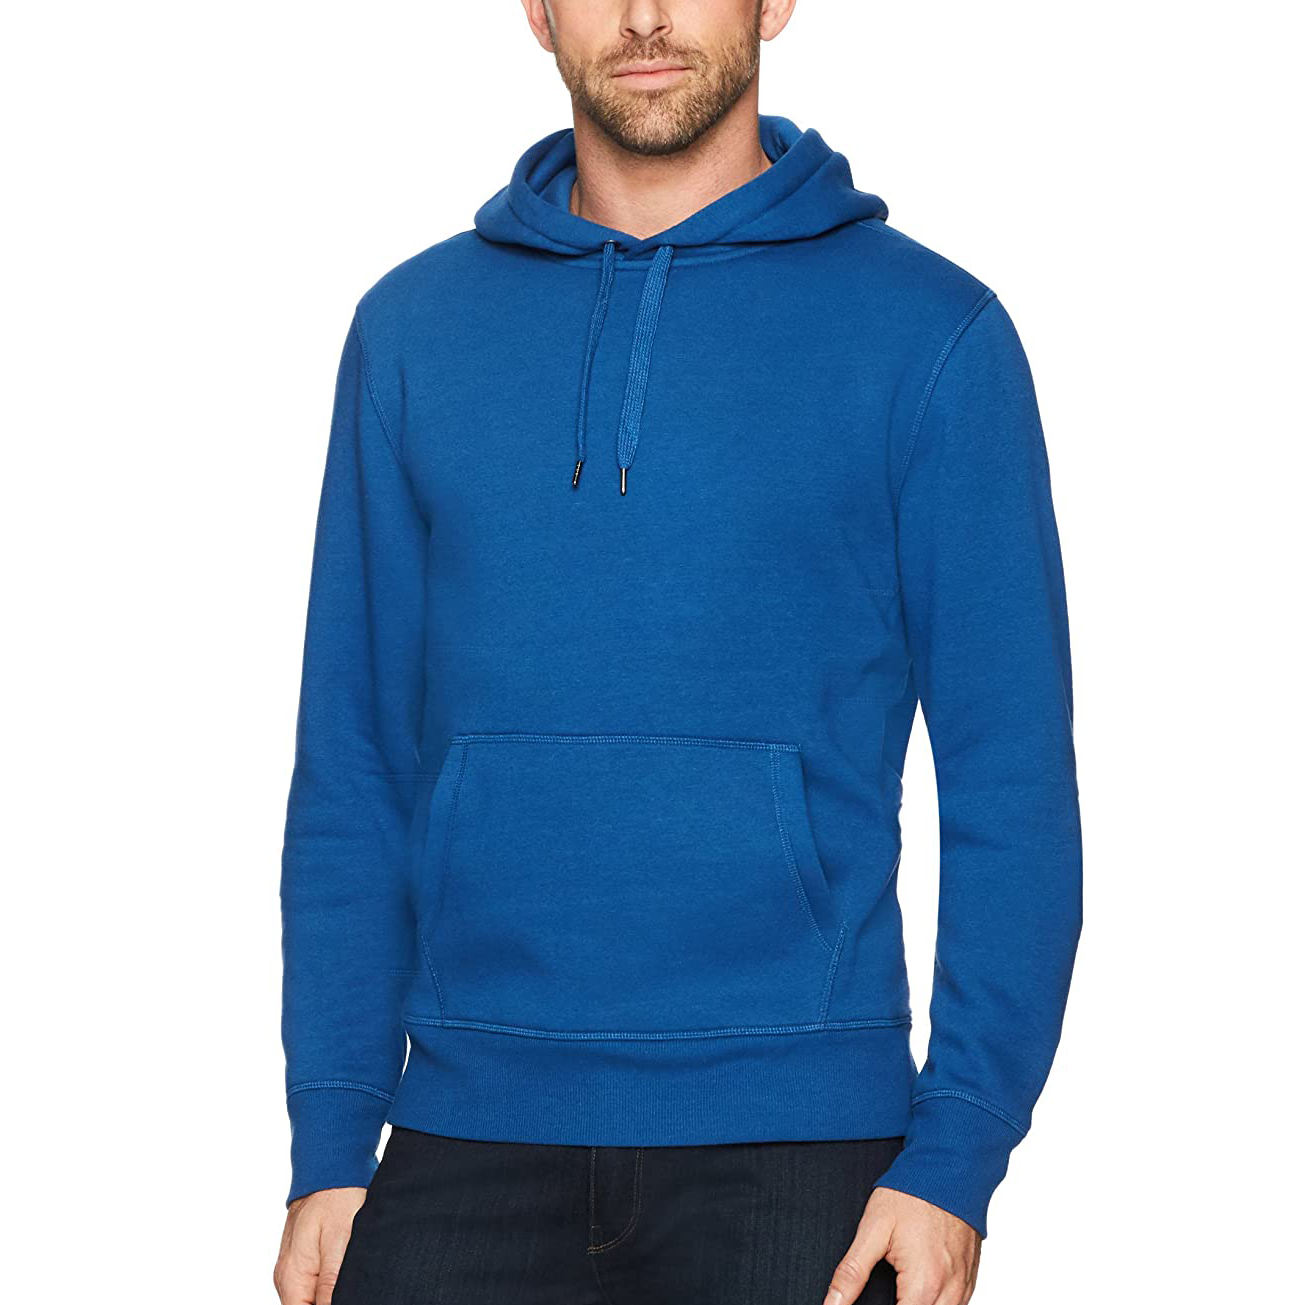 100 cotton hoodies with custom logo design services solid color embroidered logo plain essentials men's standard hooded